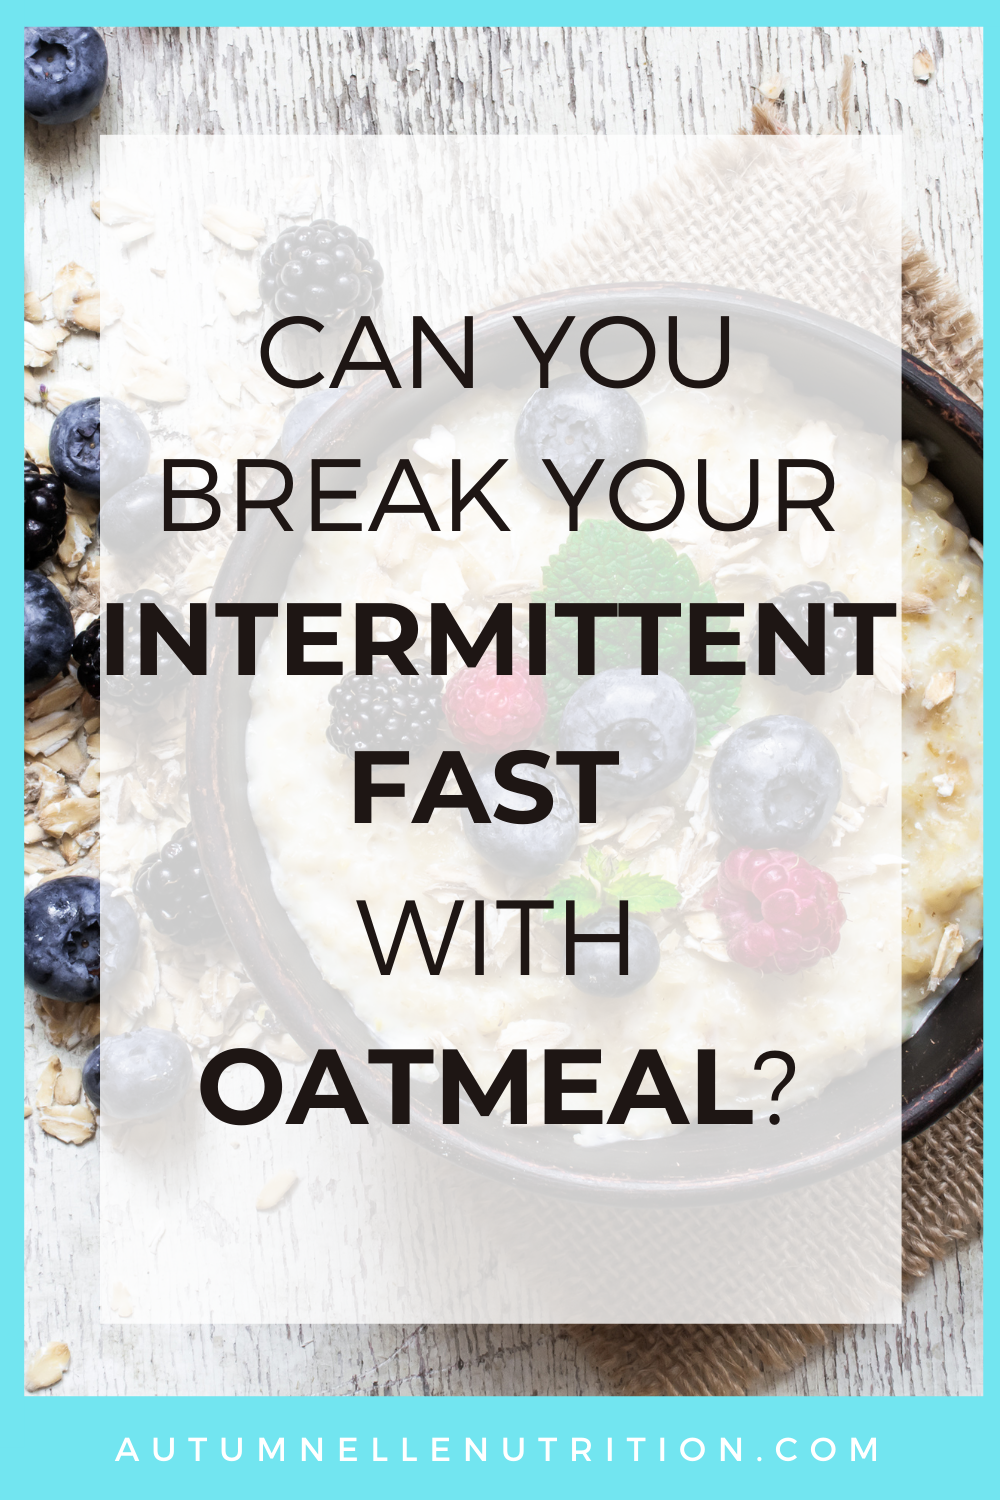 Oatmeal To Break Intermittent Fasting